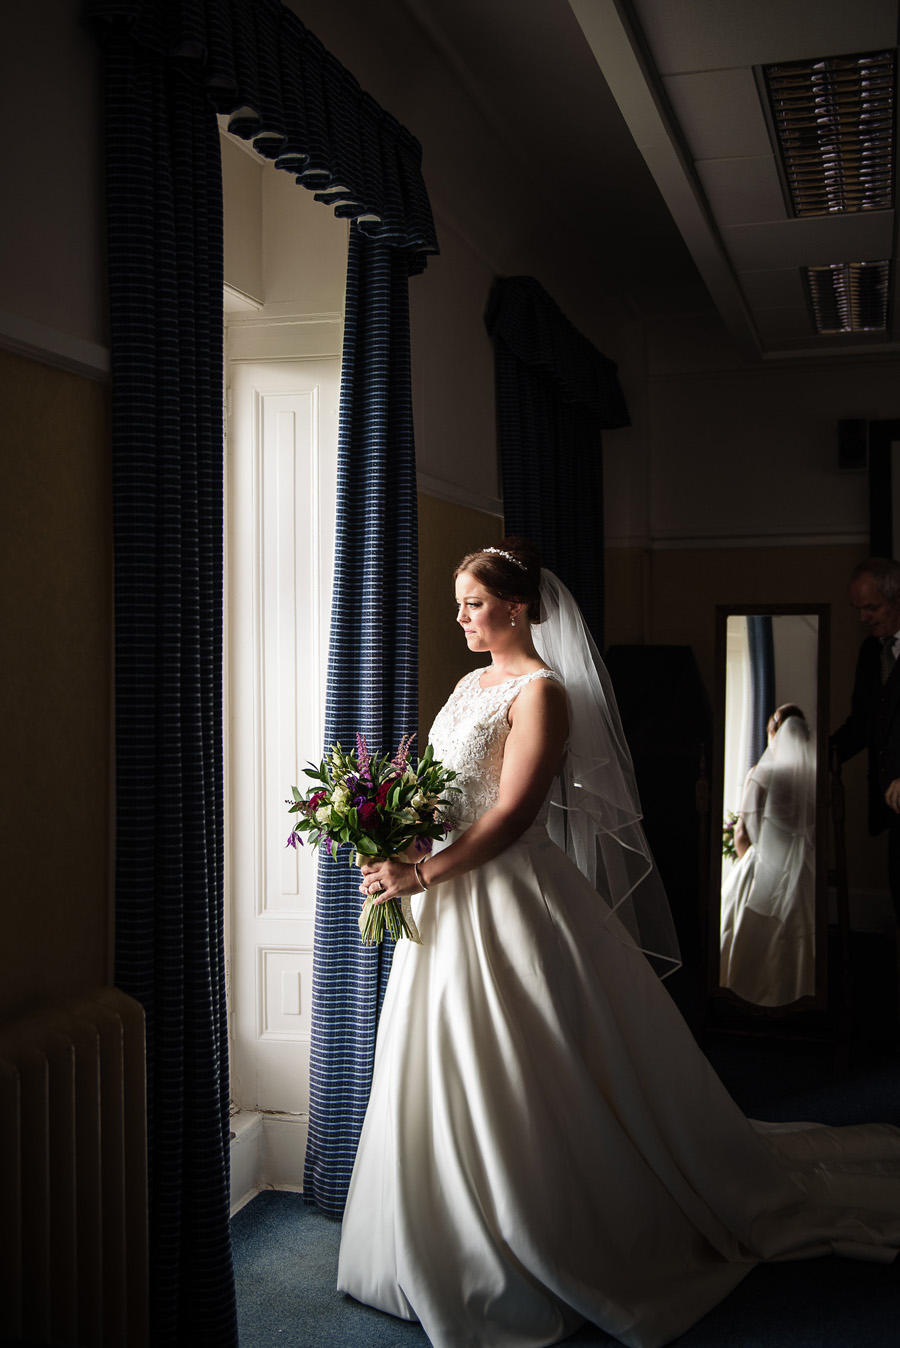 Stunning real wedding at Salomons Estate, images by Penny Young Photography (4)